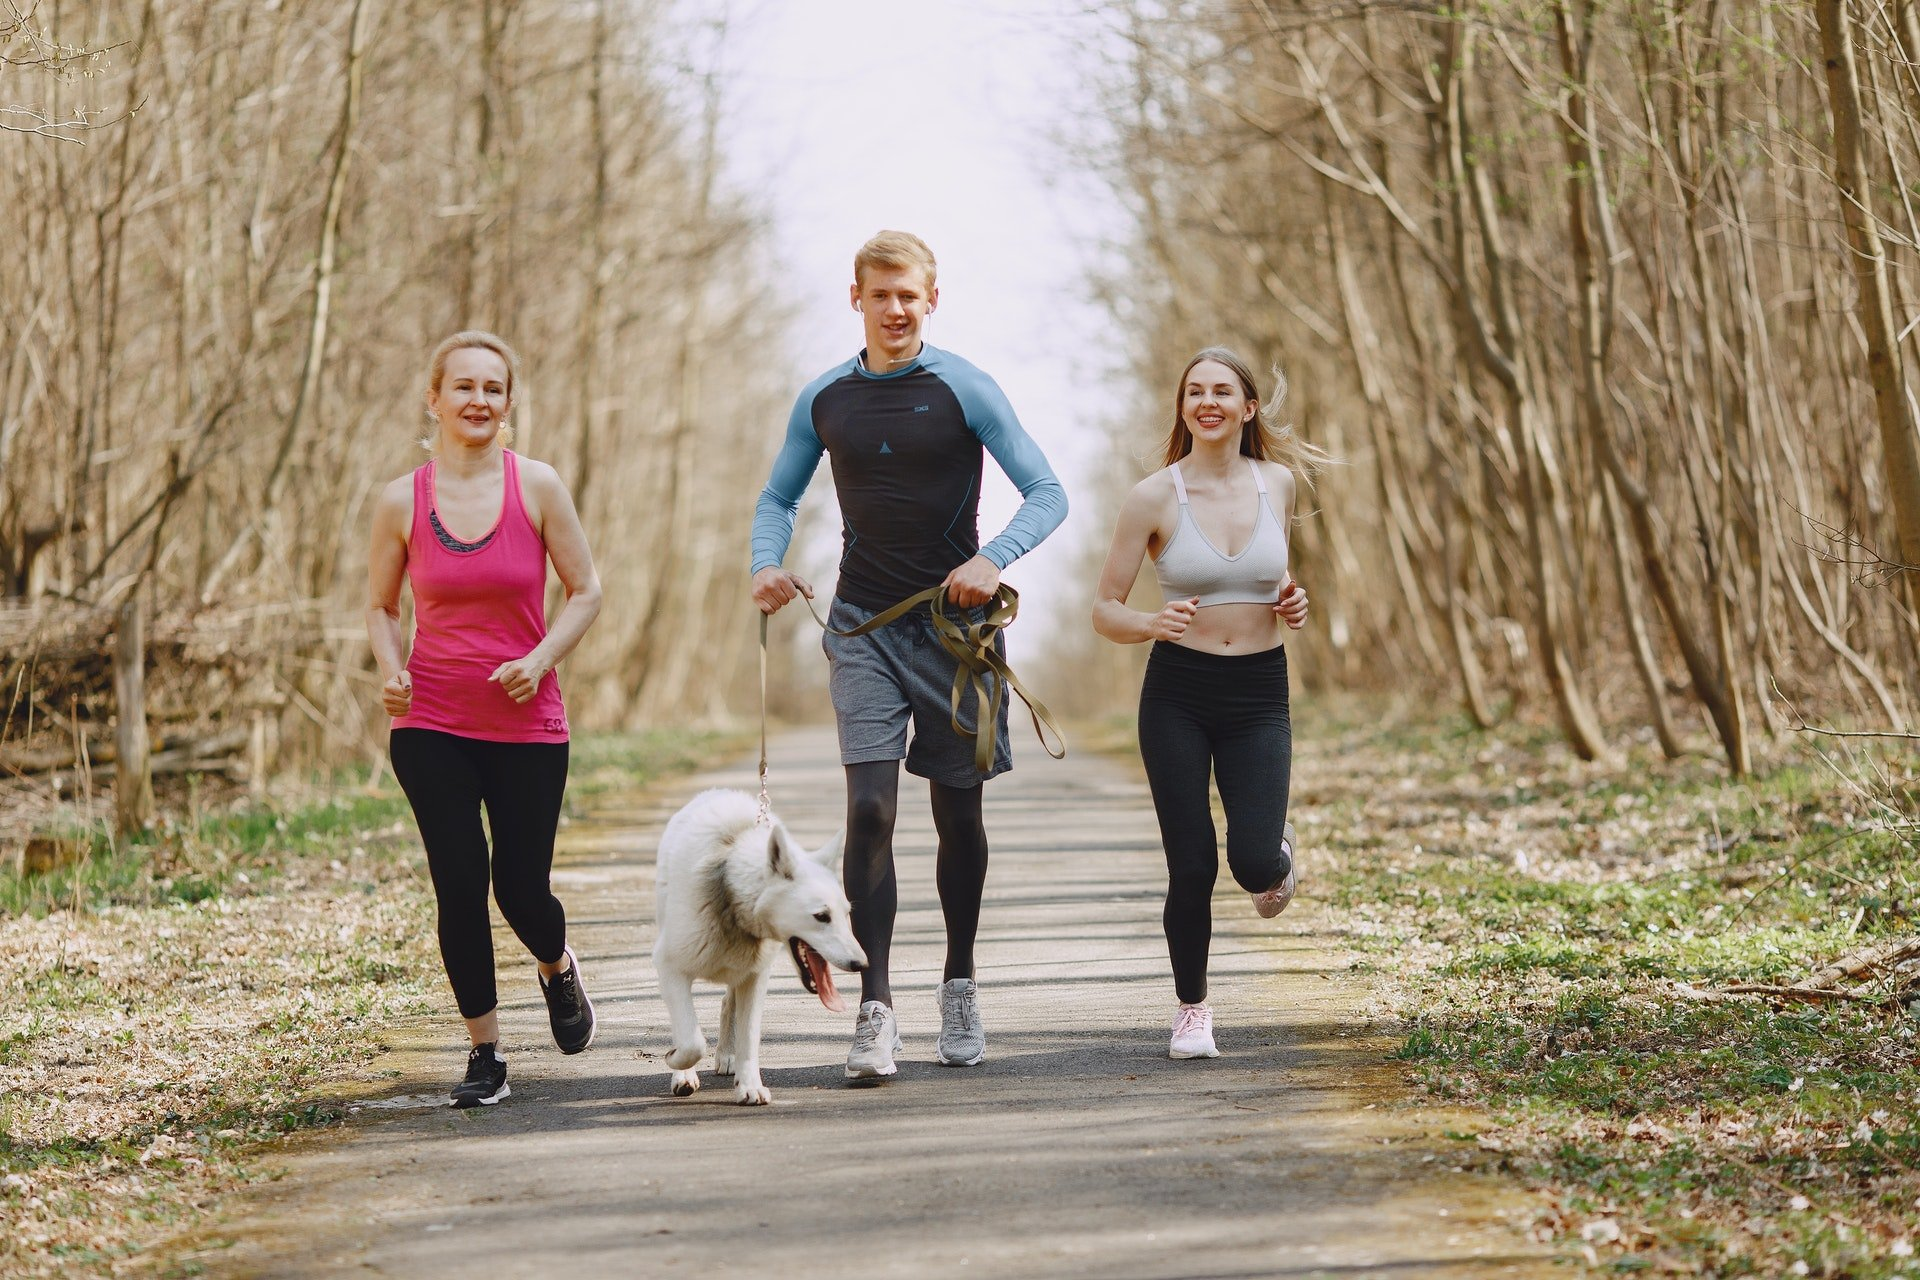 photo-of-two-women-and-man-jogging-with-dog-on-pavement-4148952